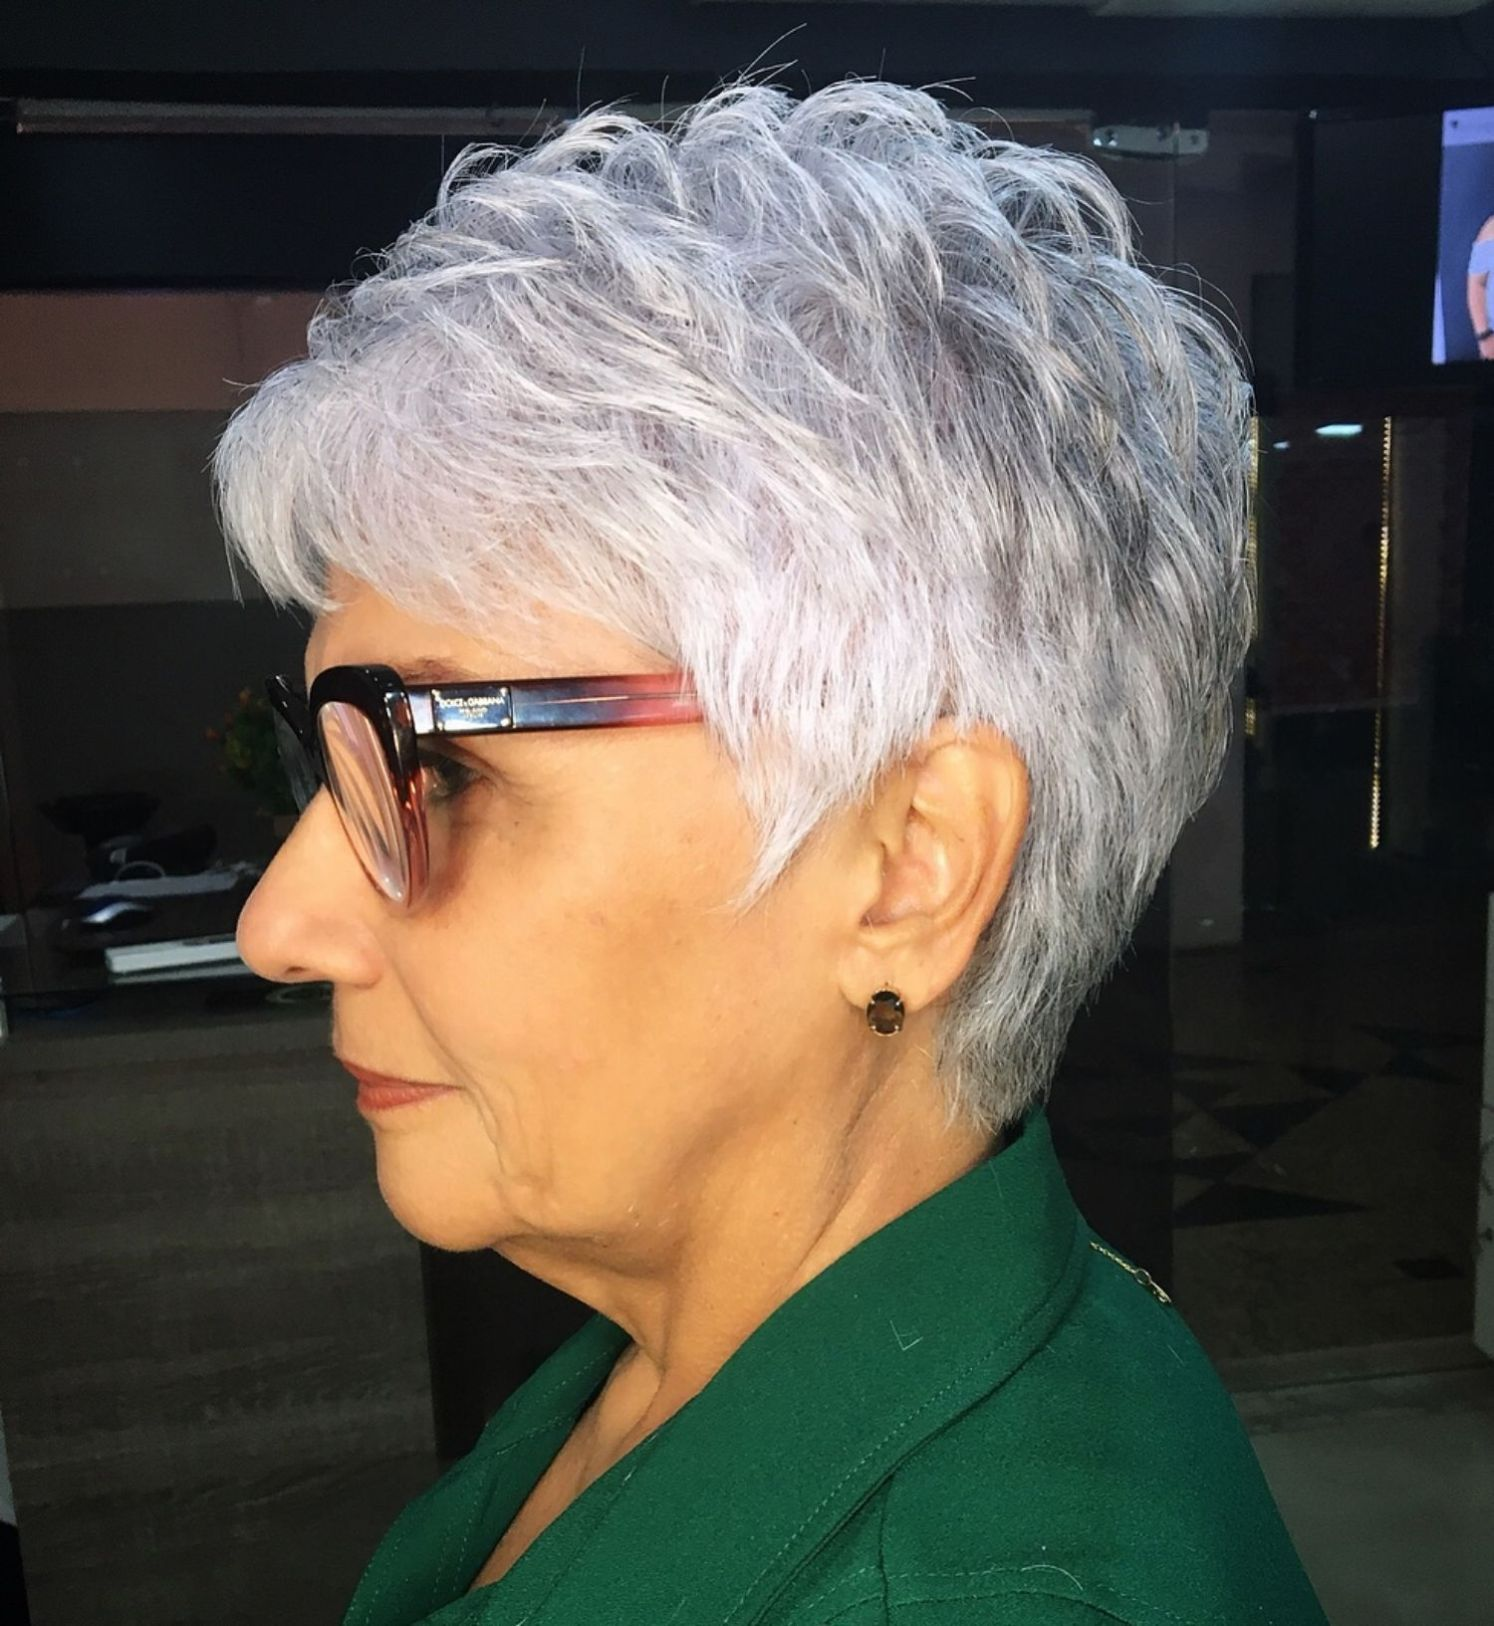 The Best Hairstyles And Haircuts For Women Over 70 Short Hair Older Women Older Women Hairstyles Cool Hairstyles